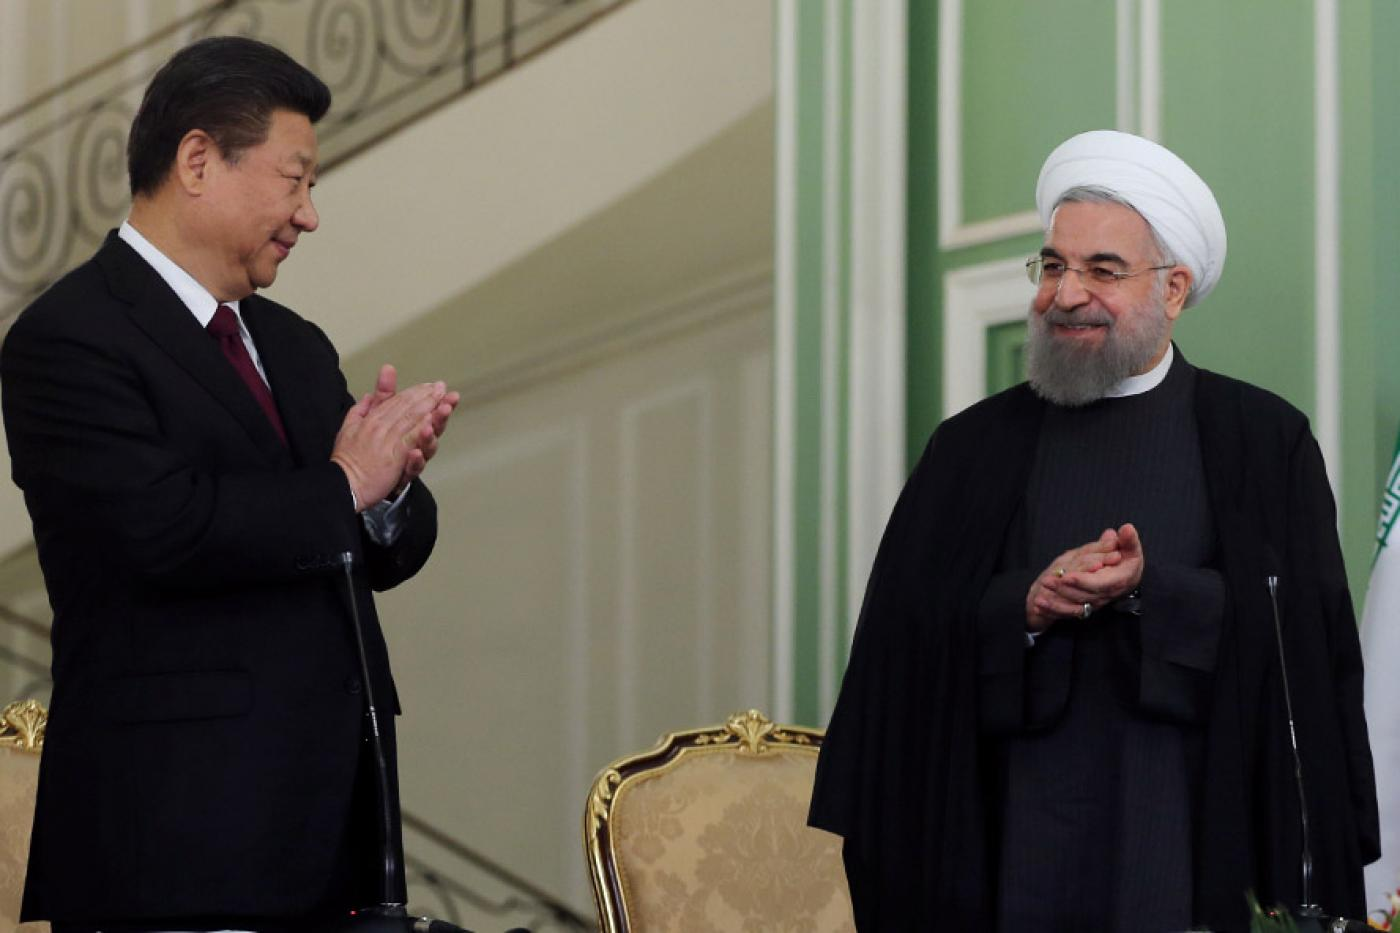 Iranian President Hassan Rouhani and his Chinese counterpart Xi Xinping meet during a joint press conference in Tehran in 2016.